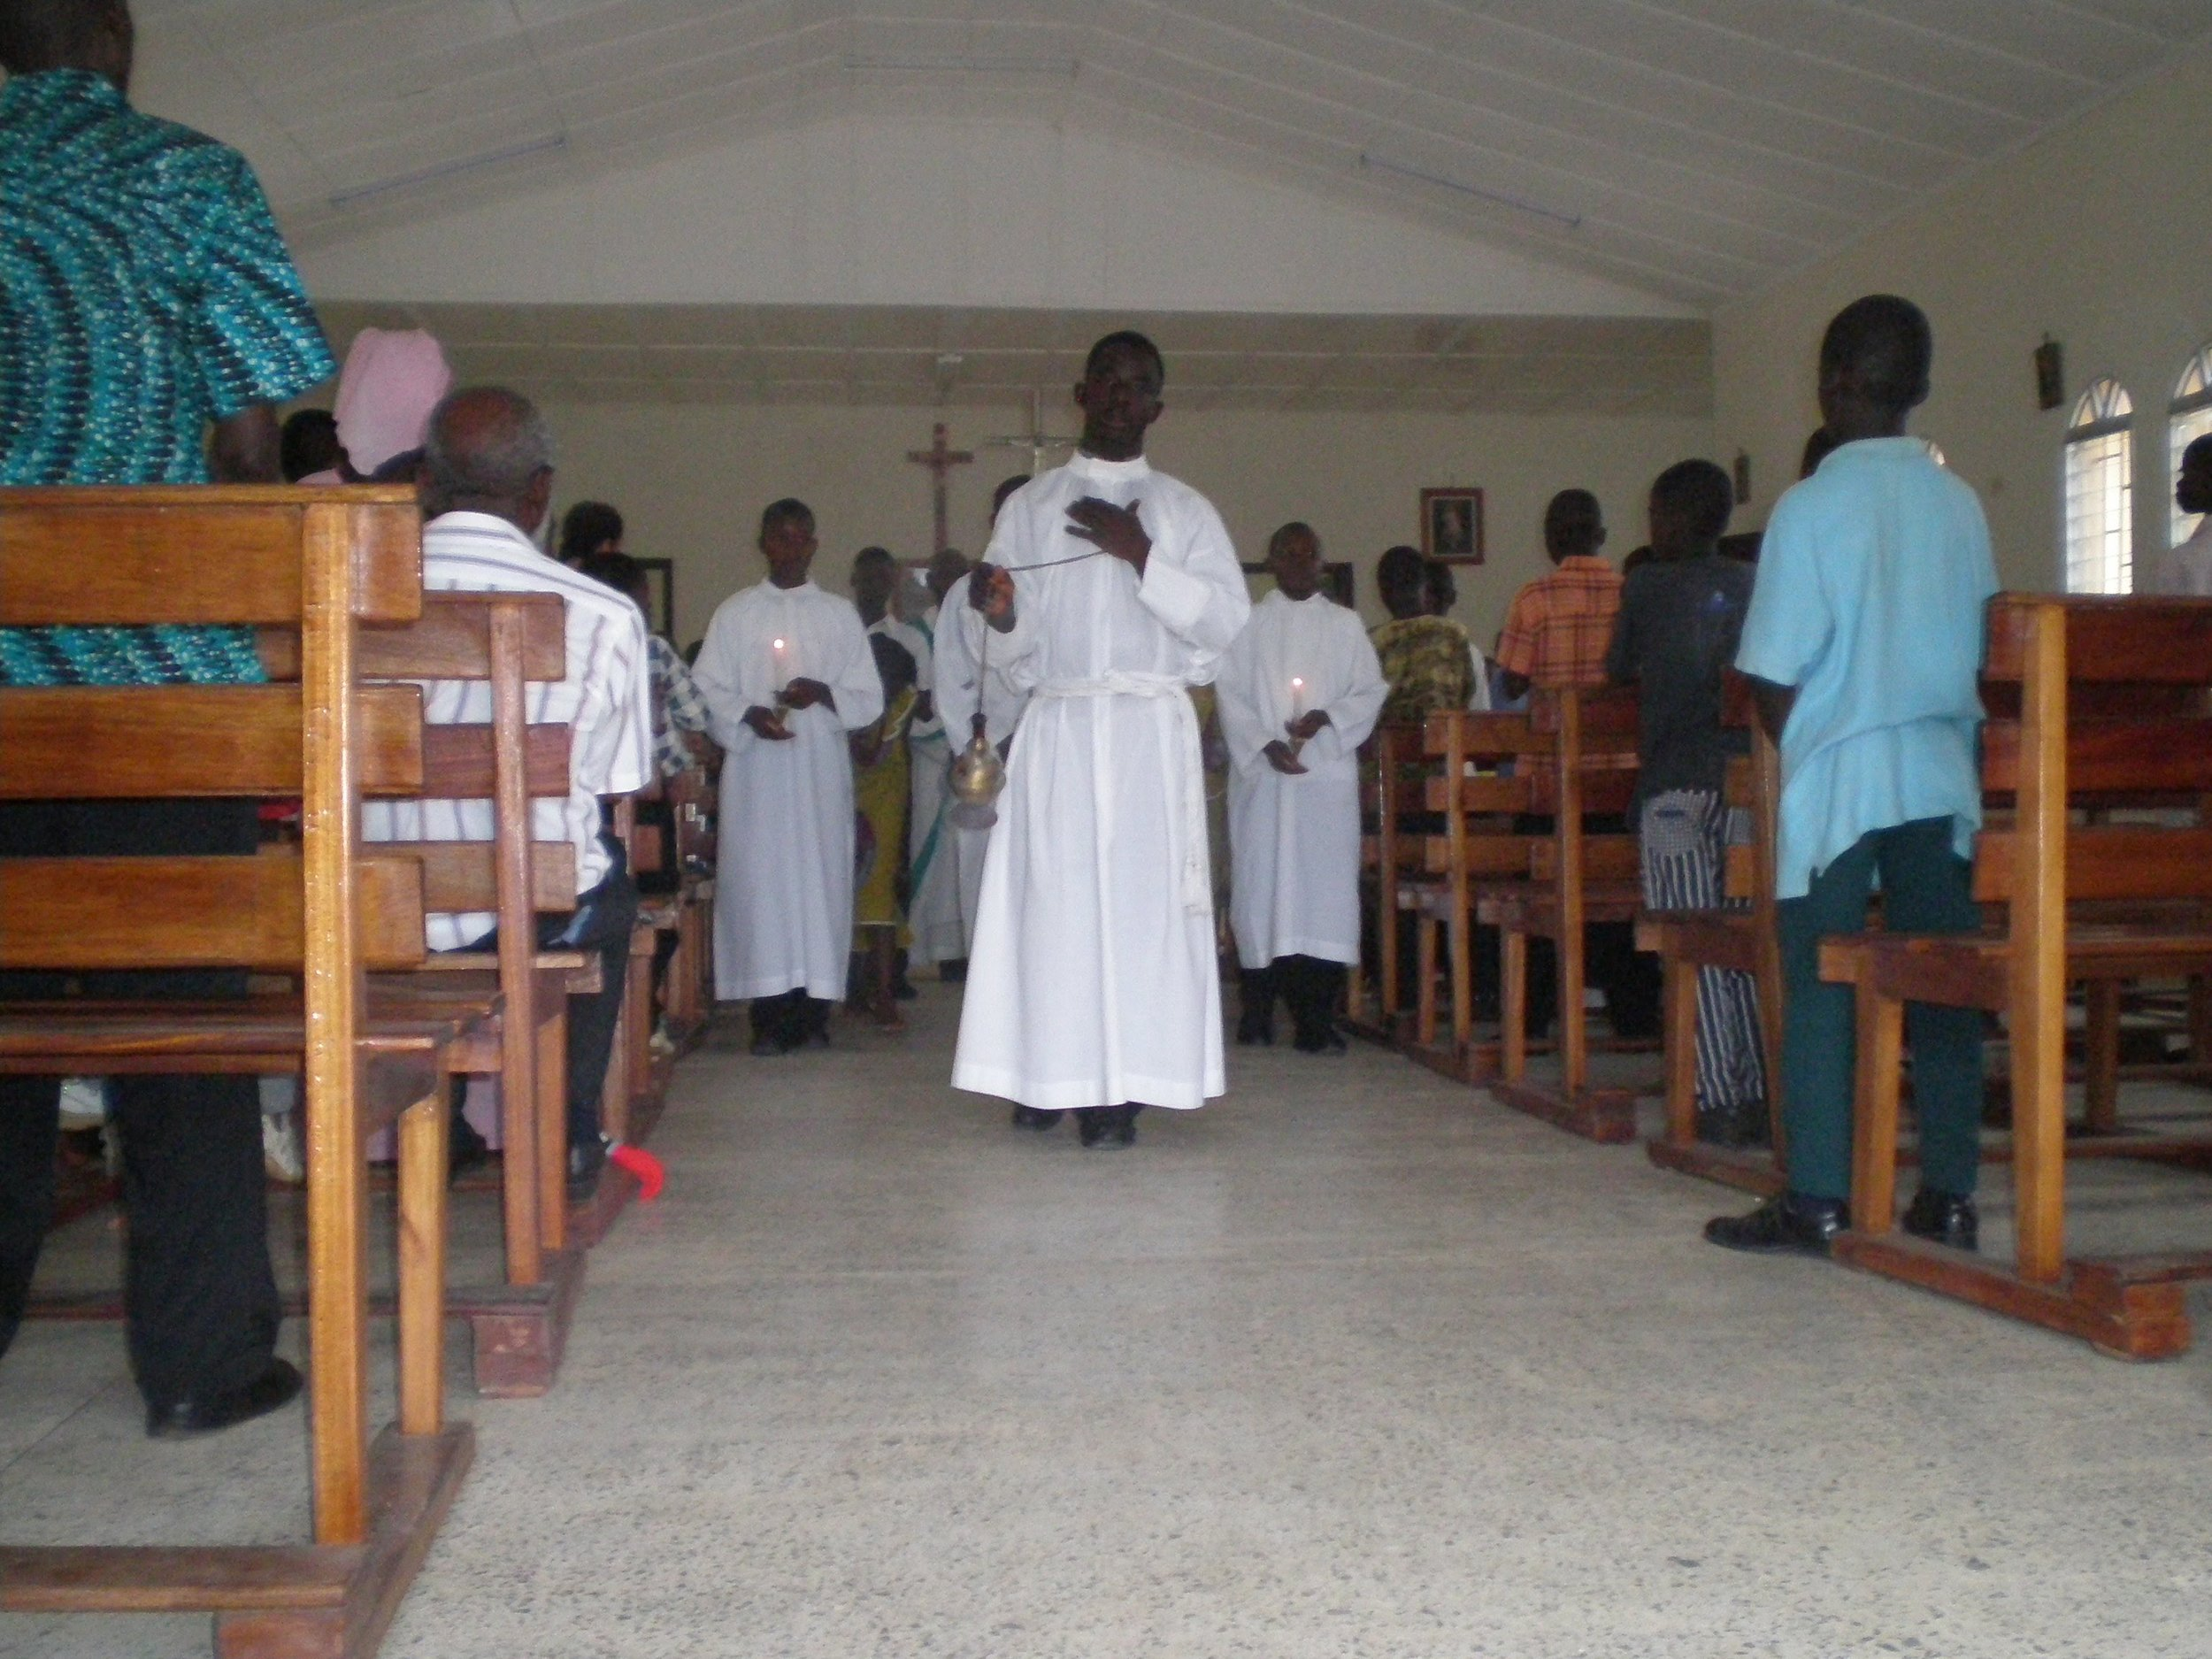 Celebrating mass together at St. Michaels' chapel in 2008.